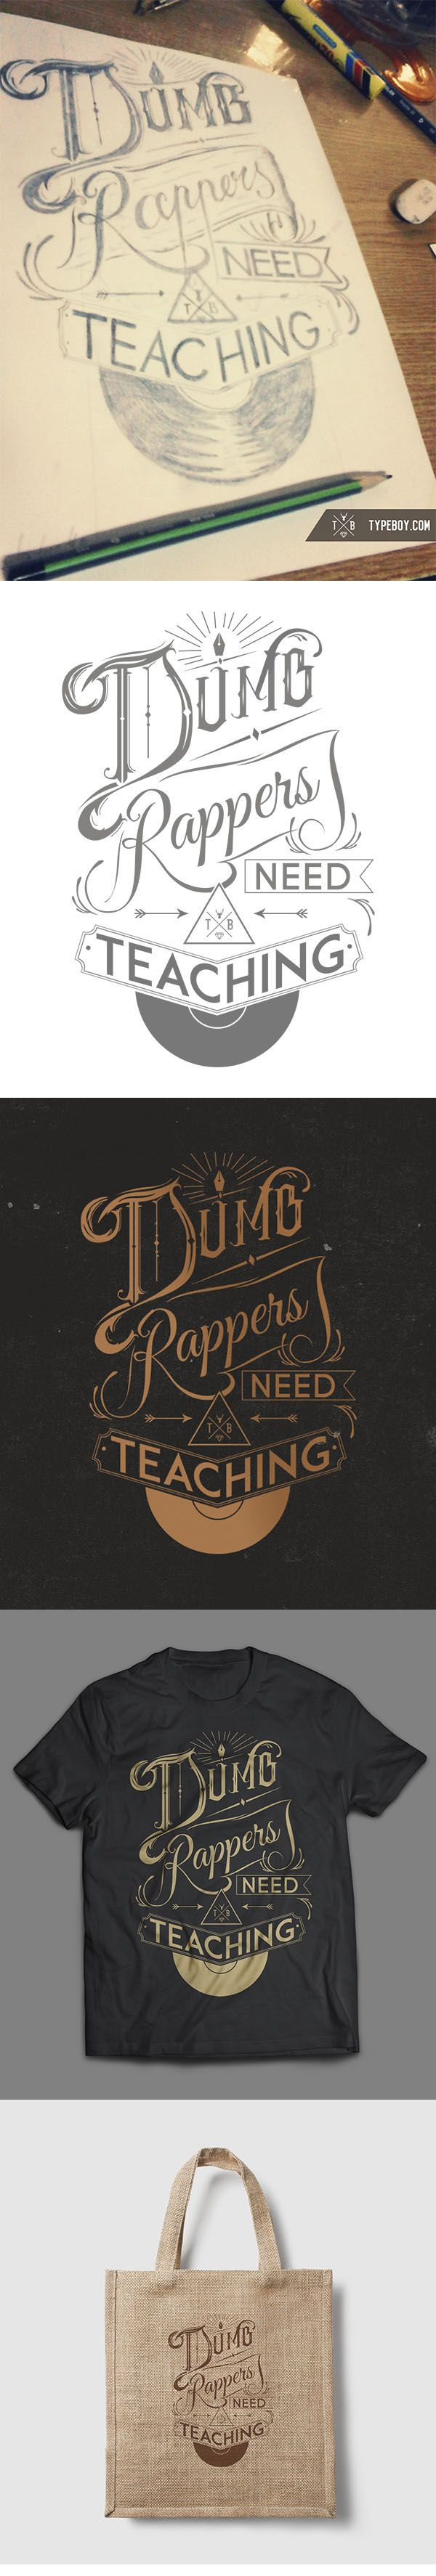 """Dumb rappers need teaching"" From scratch 